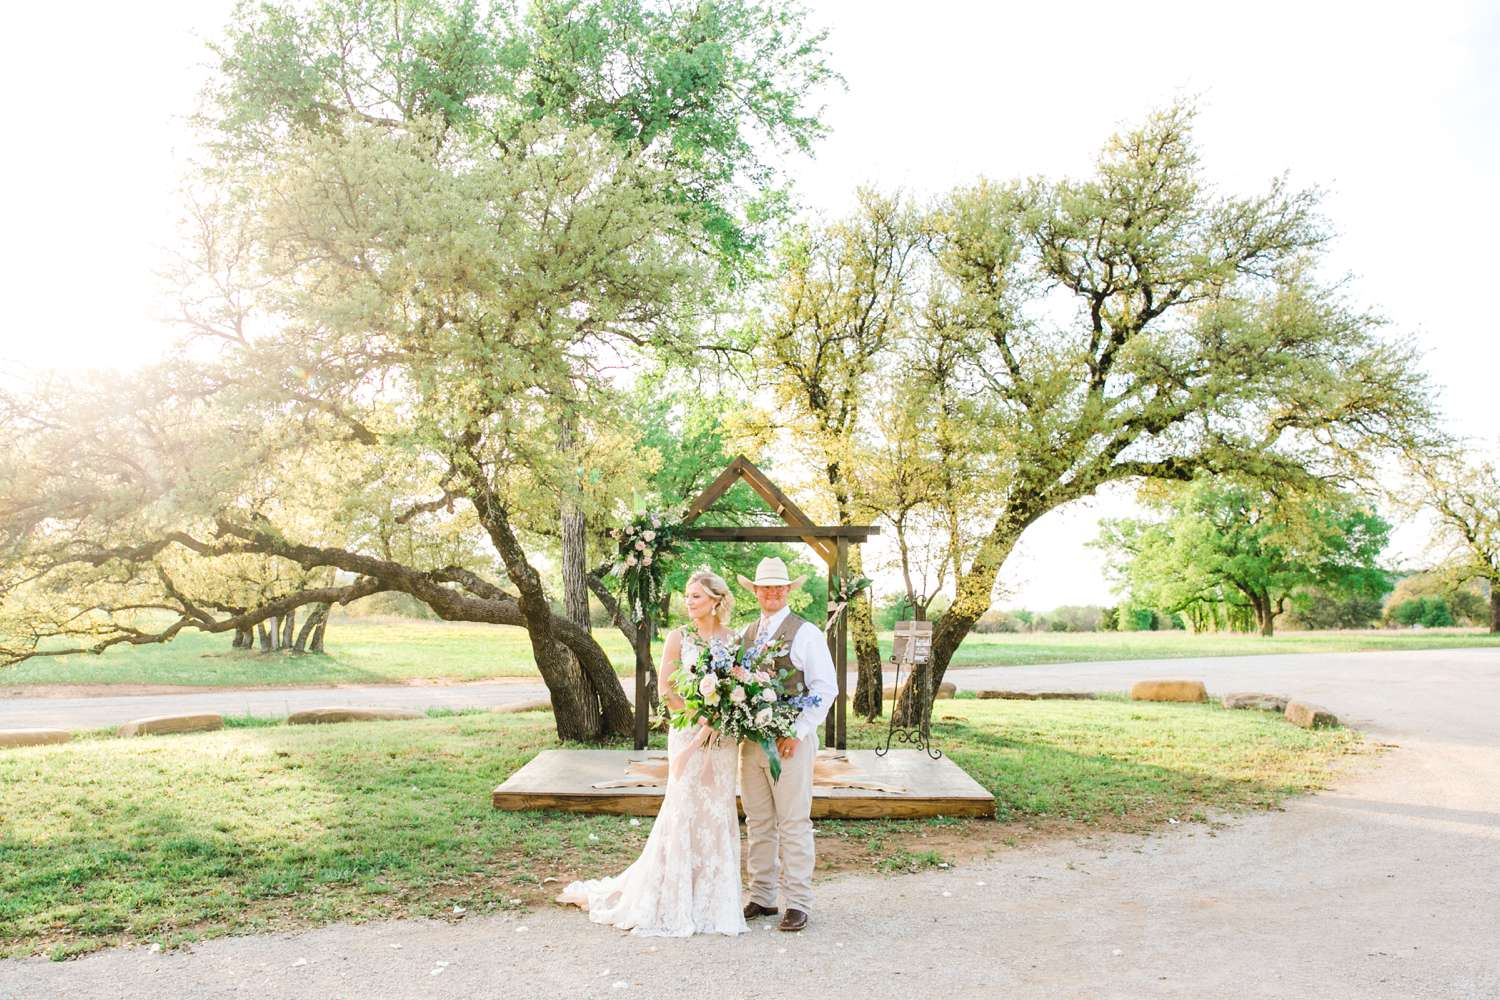 SARAH+TREVOR+BADGETT+SPARROW+CREEK+GRAHAM+TEXAS+ALLEEJ+WEDDINGS_0087.jpg